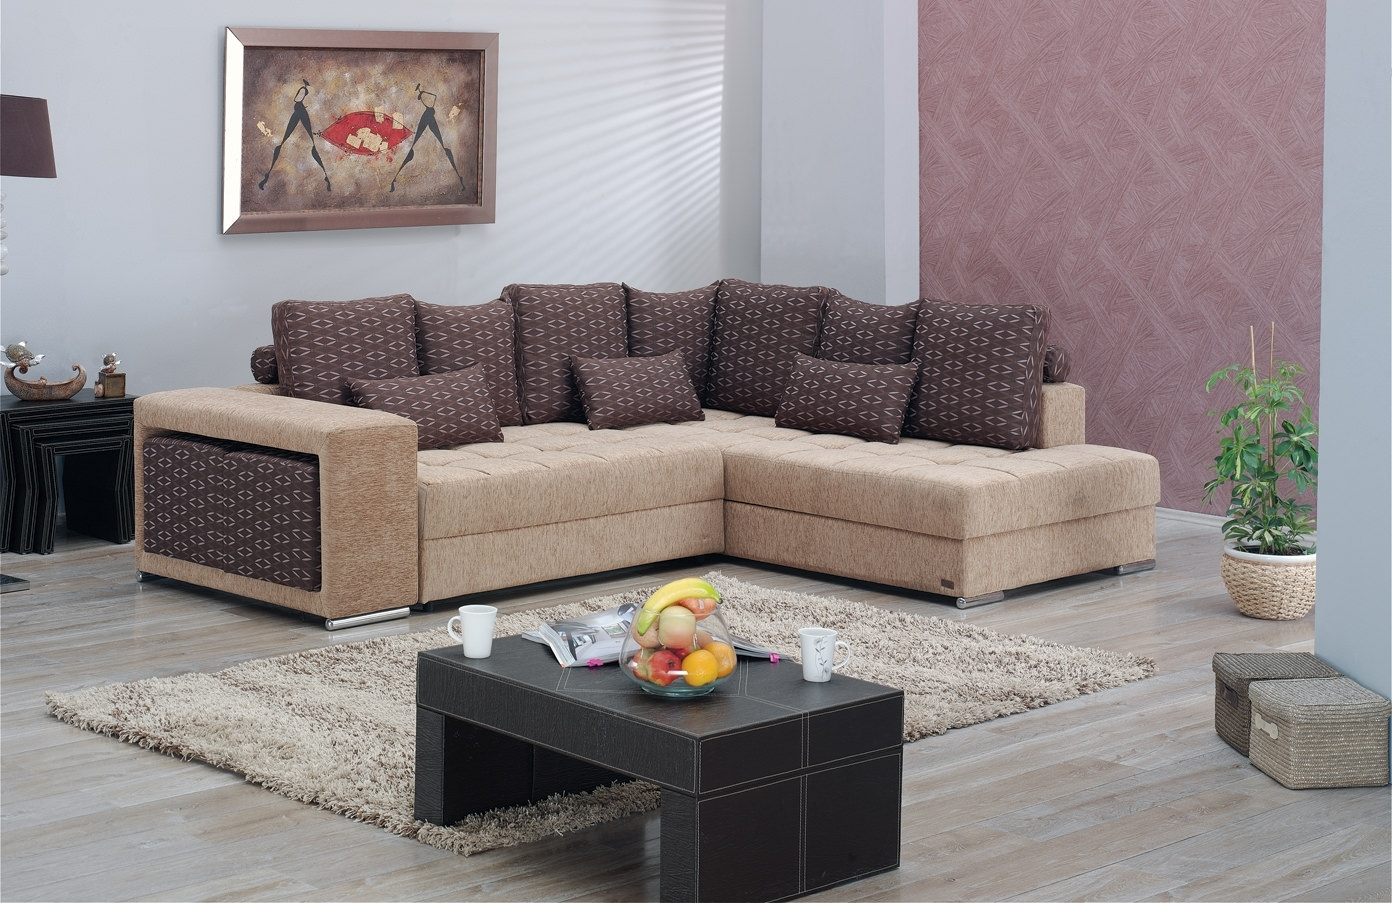 Los Angeles Sectional Sofa Setempire Furniture Usa Pertaining To Los Angeles Sectional Sofas (View 6 of 10)